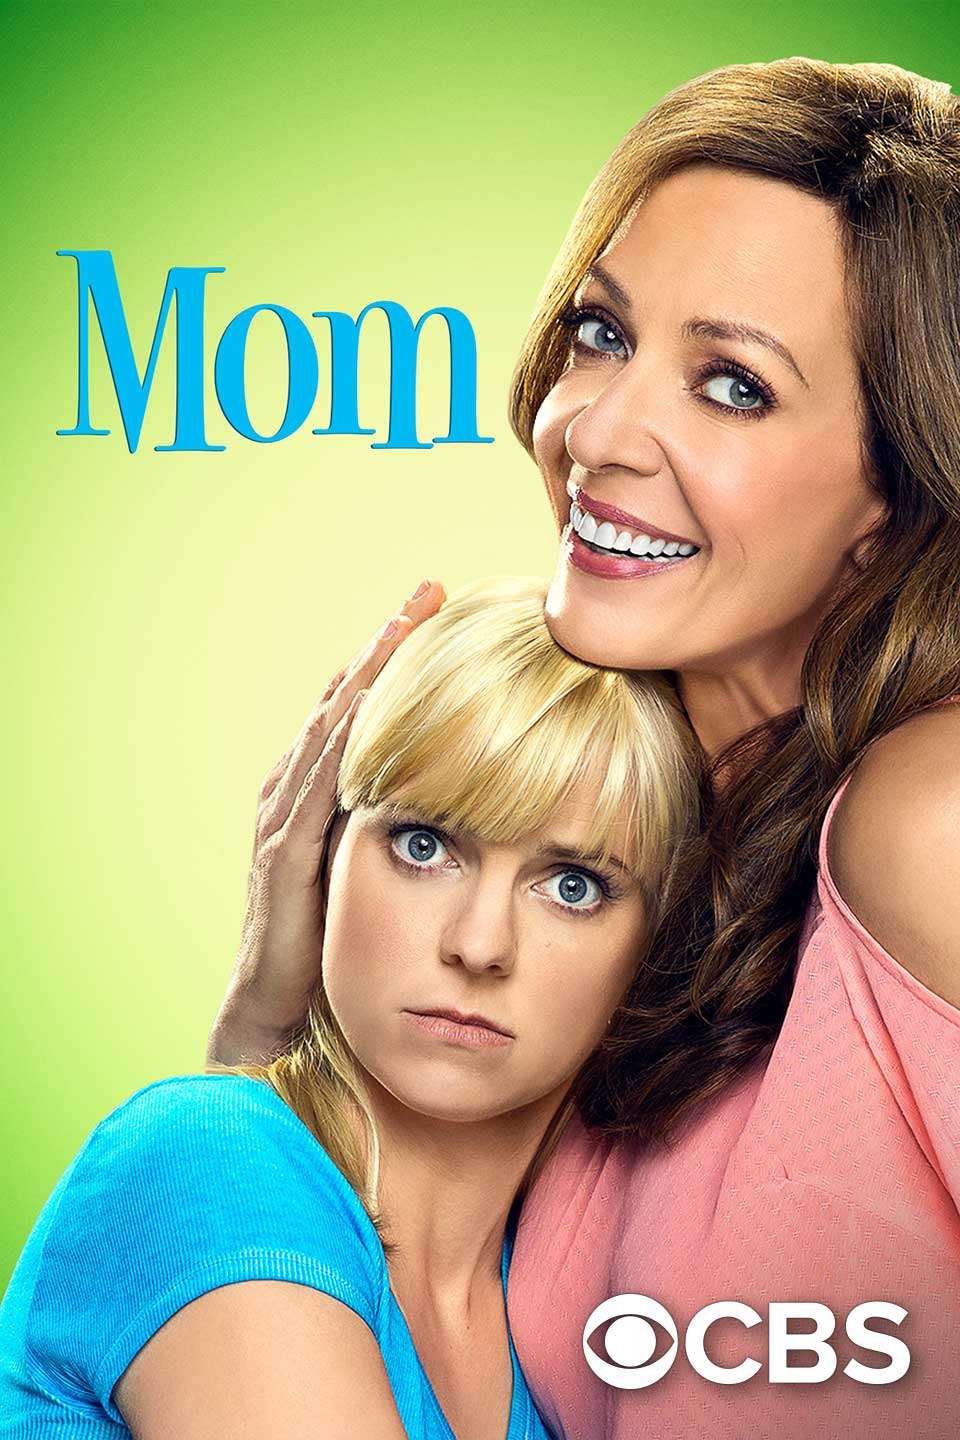 Mom: High-Tops and Brown Jacket | Season 4 | Episode 1